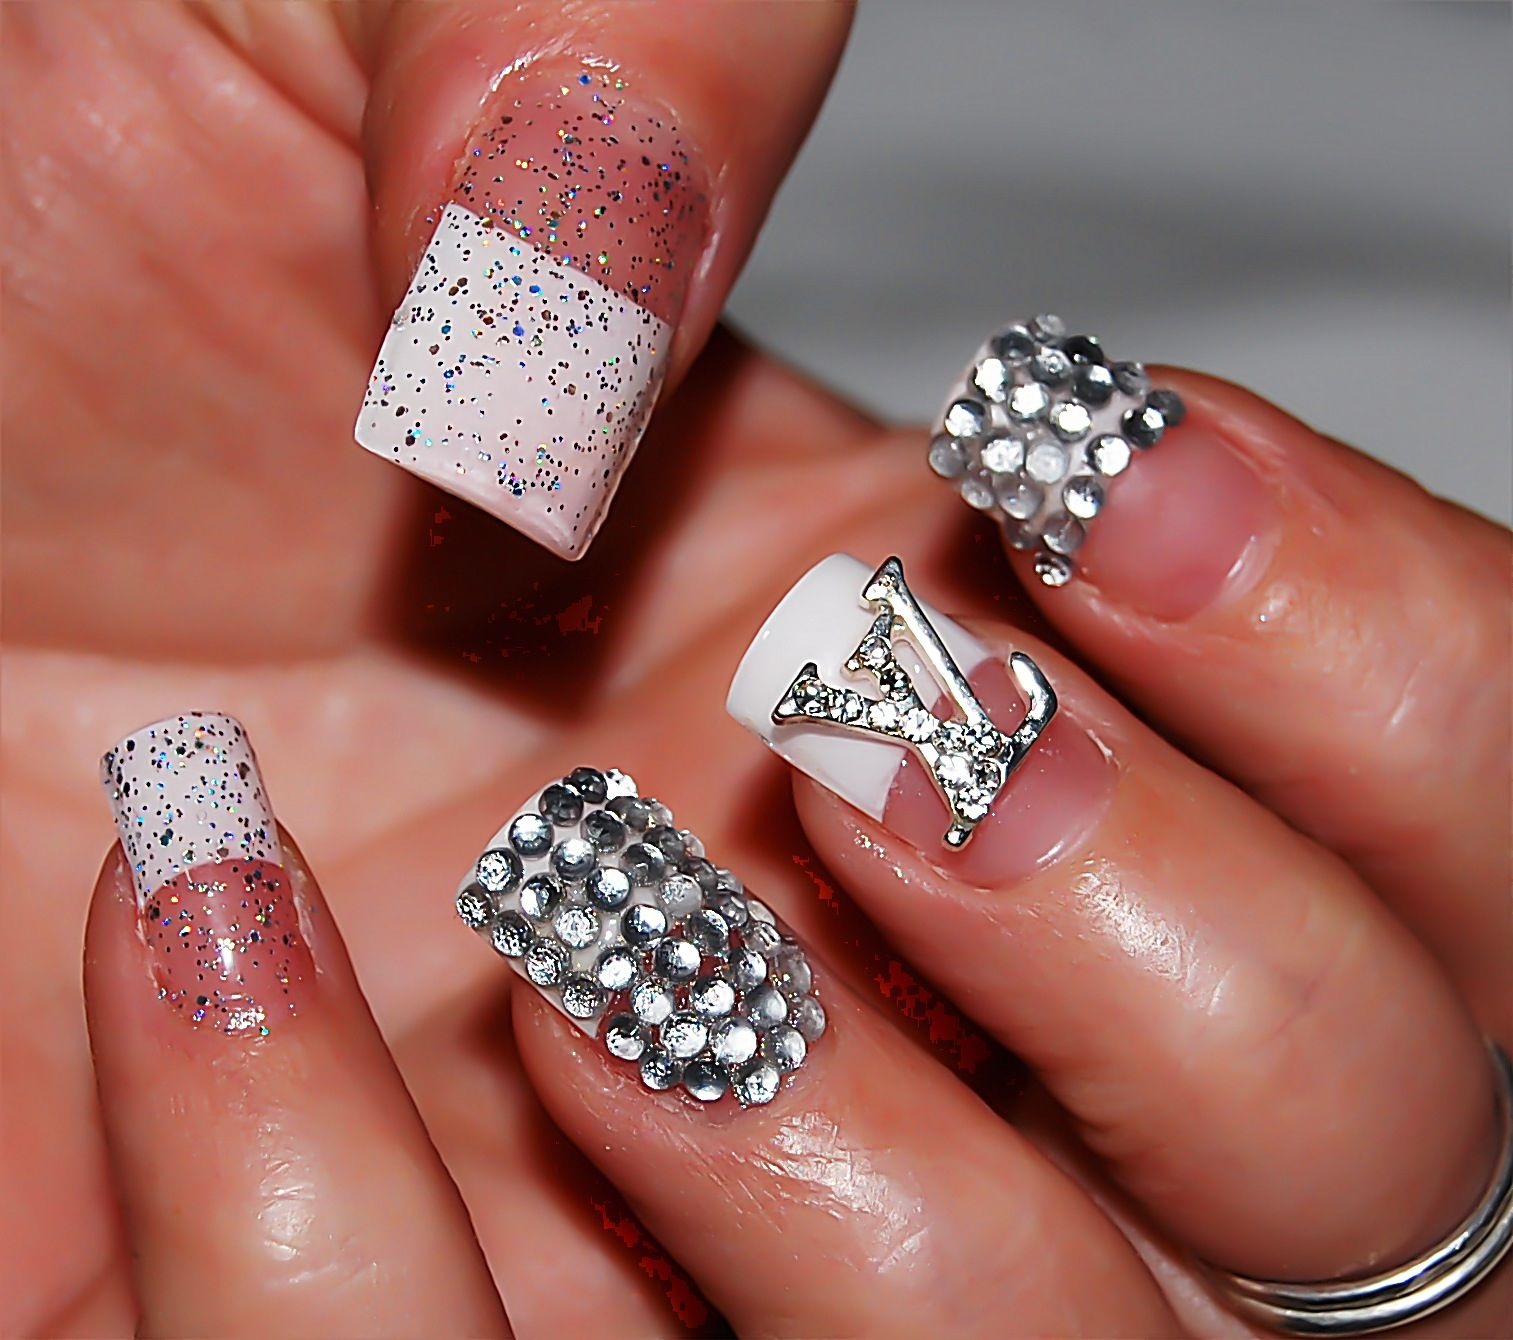 Bling Bling Louis Vuitton nail art design | Everything Nails ...